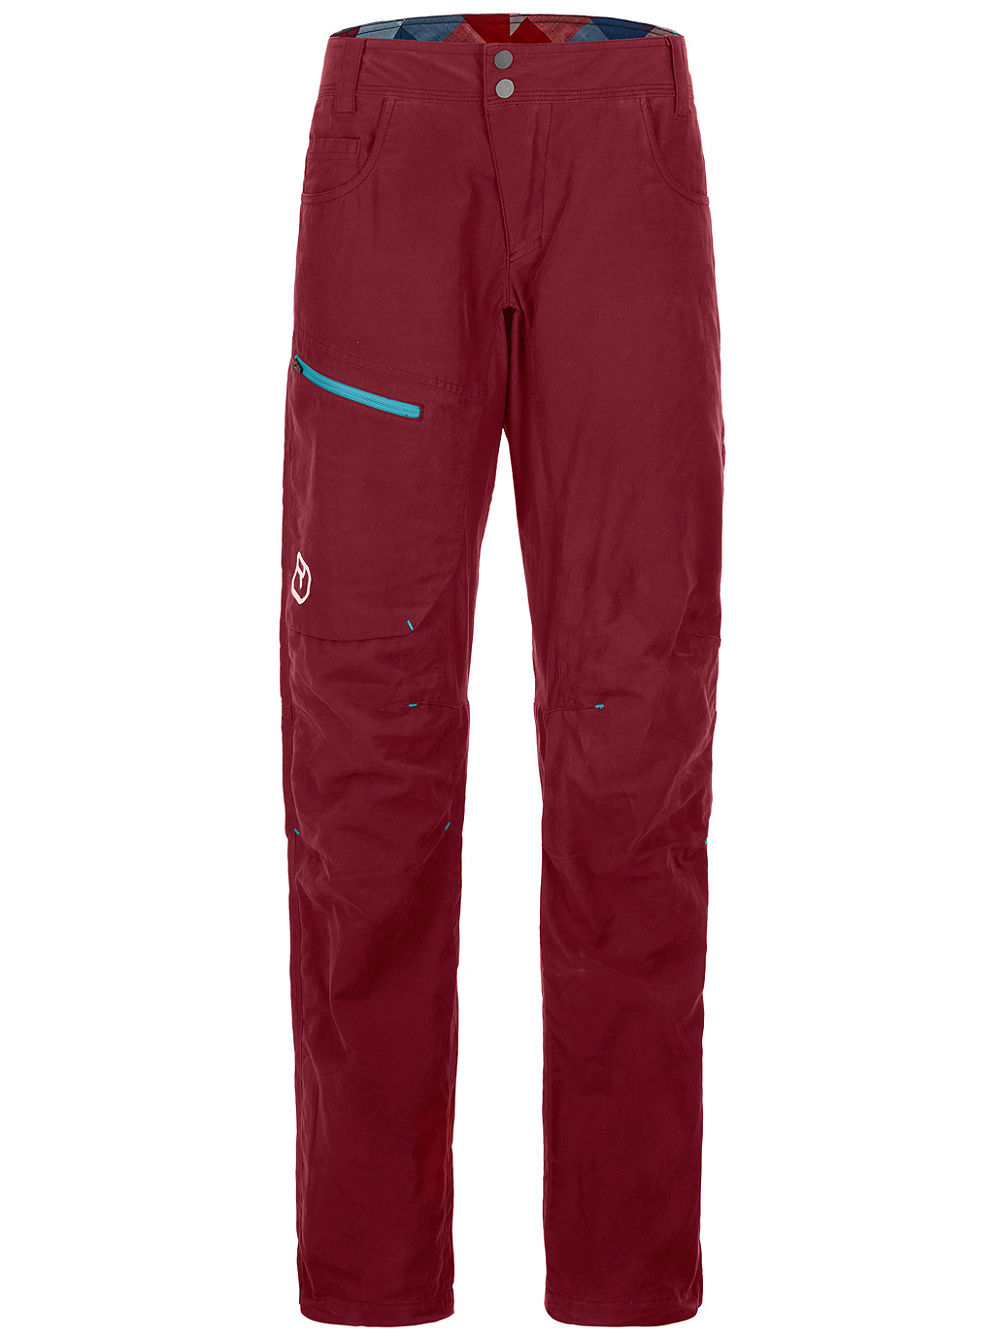 Corvara Outdoor Pants